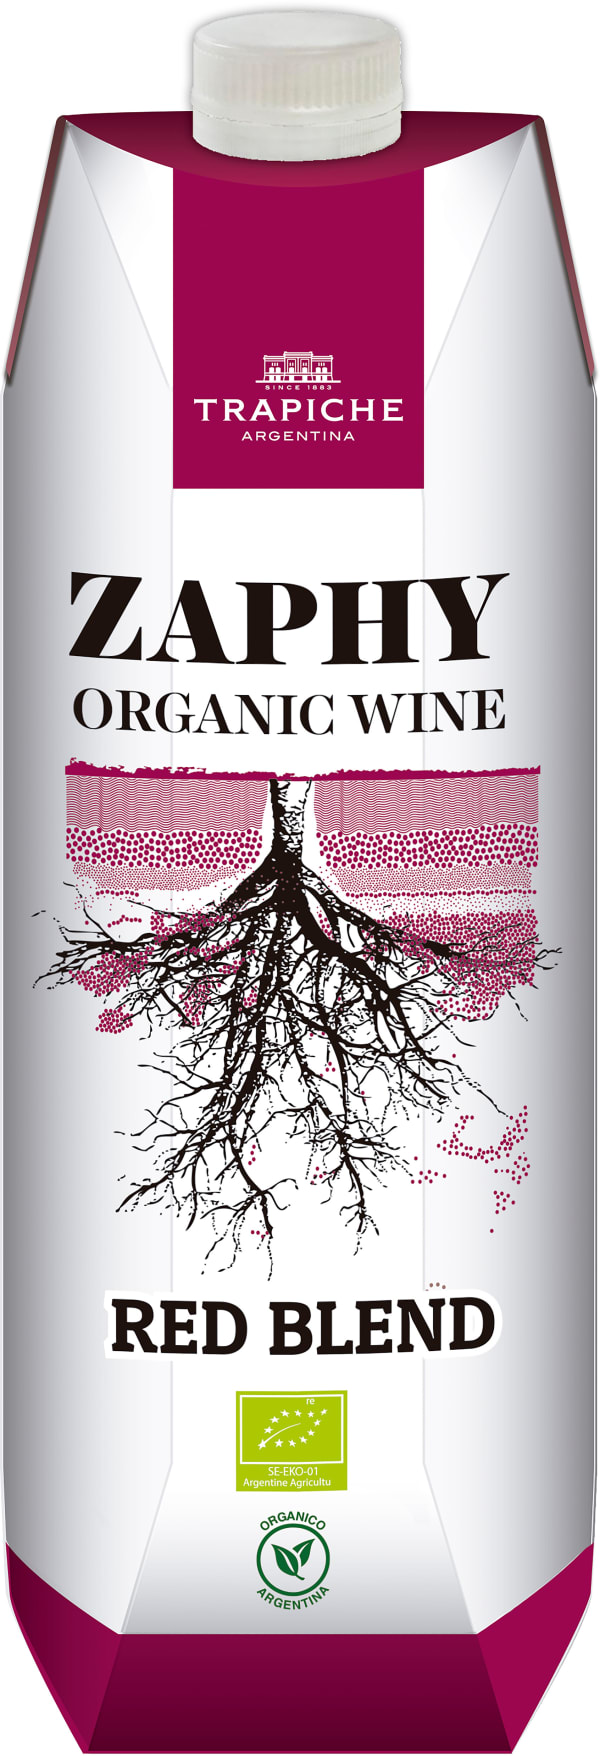 Trapiche Zaphy Organic red blend 2019 kartongförpackning